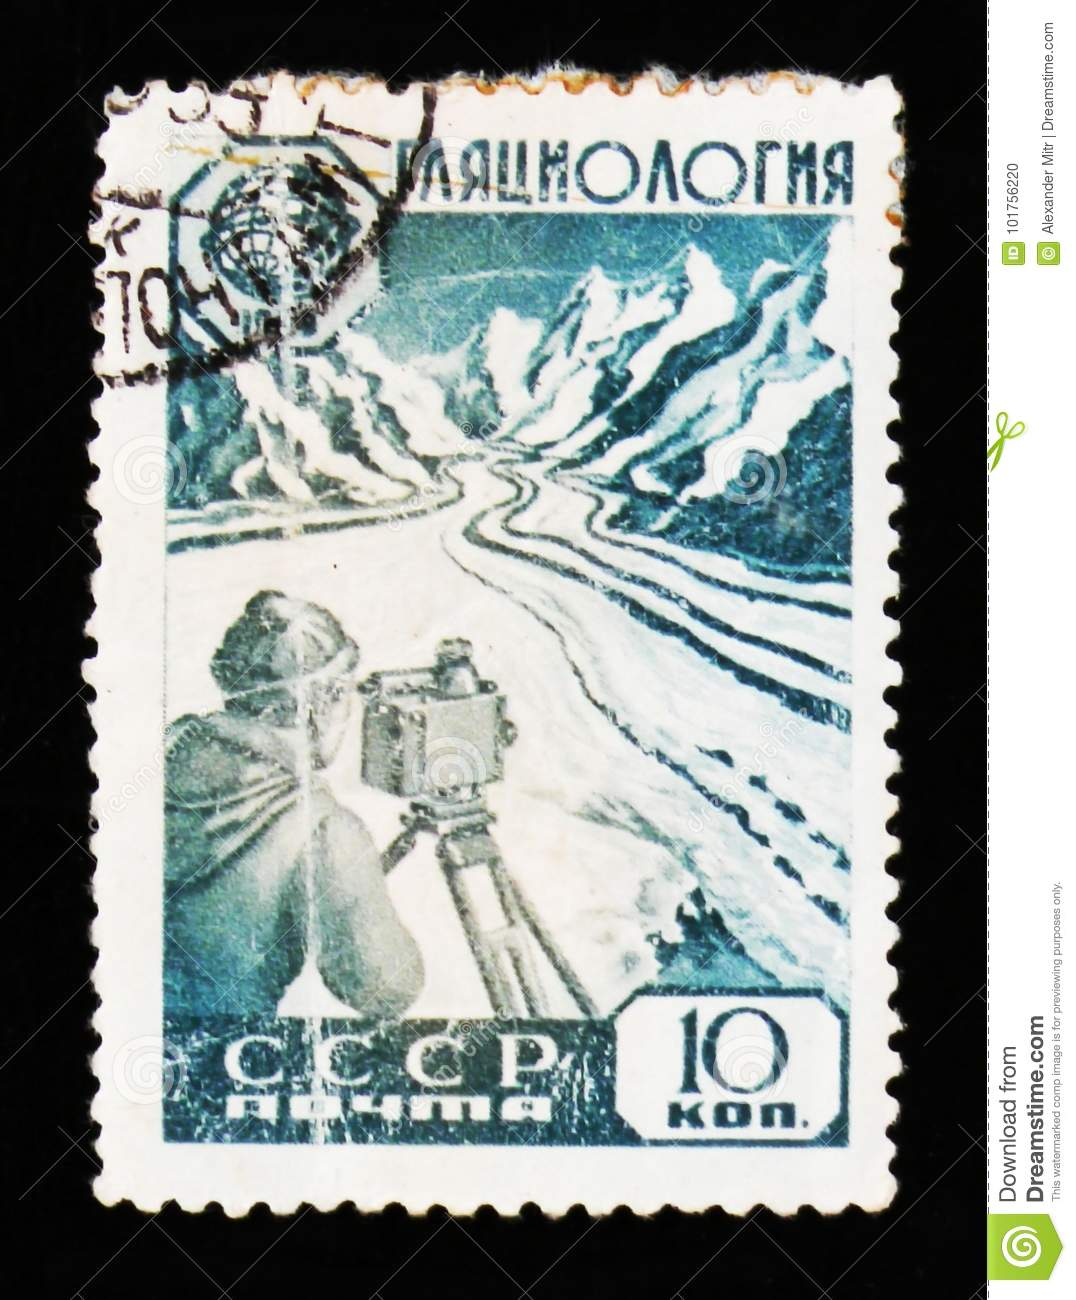 USSR Russia postage stamp shows glaciology researcher with device at glacier in mountain, circa 1959